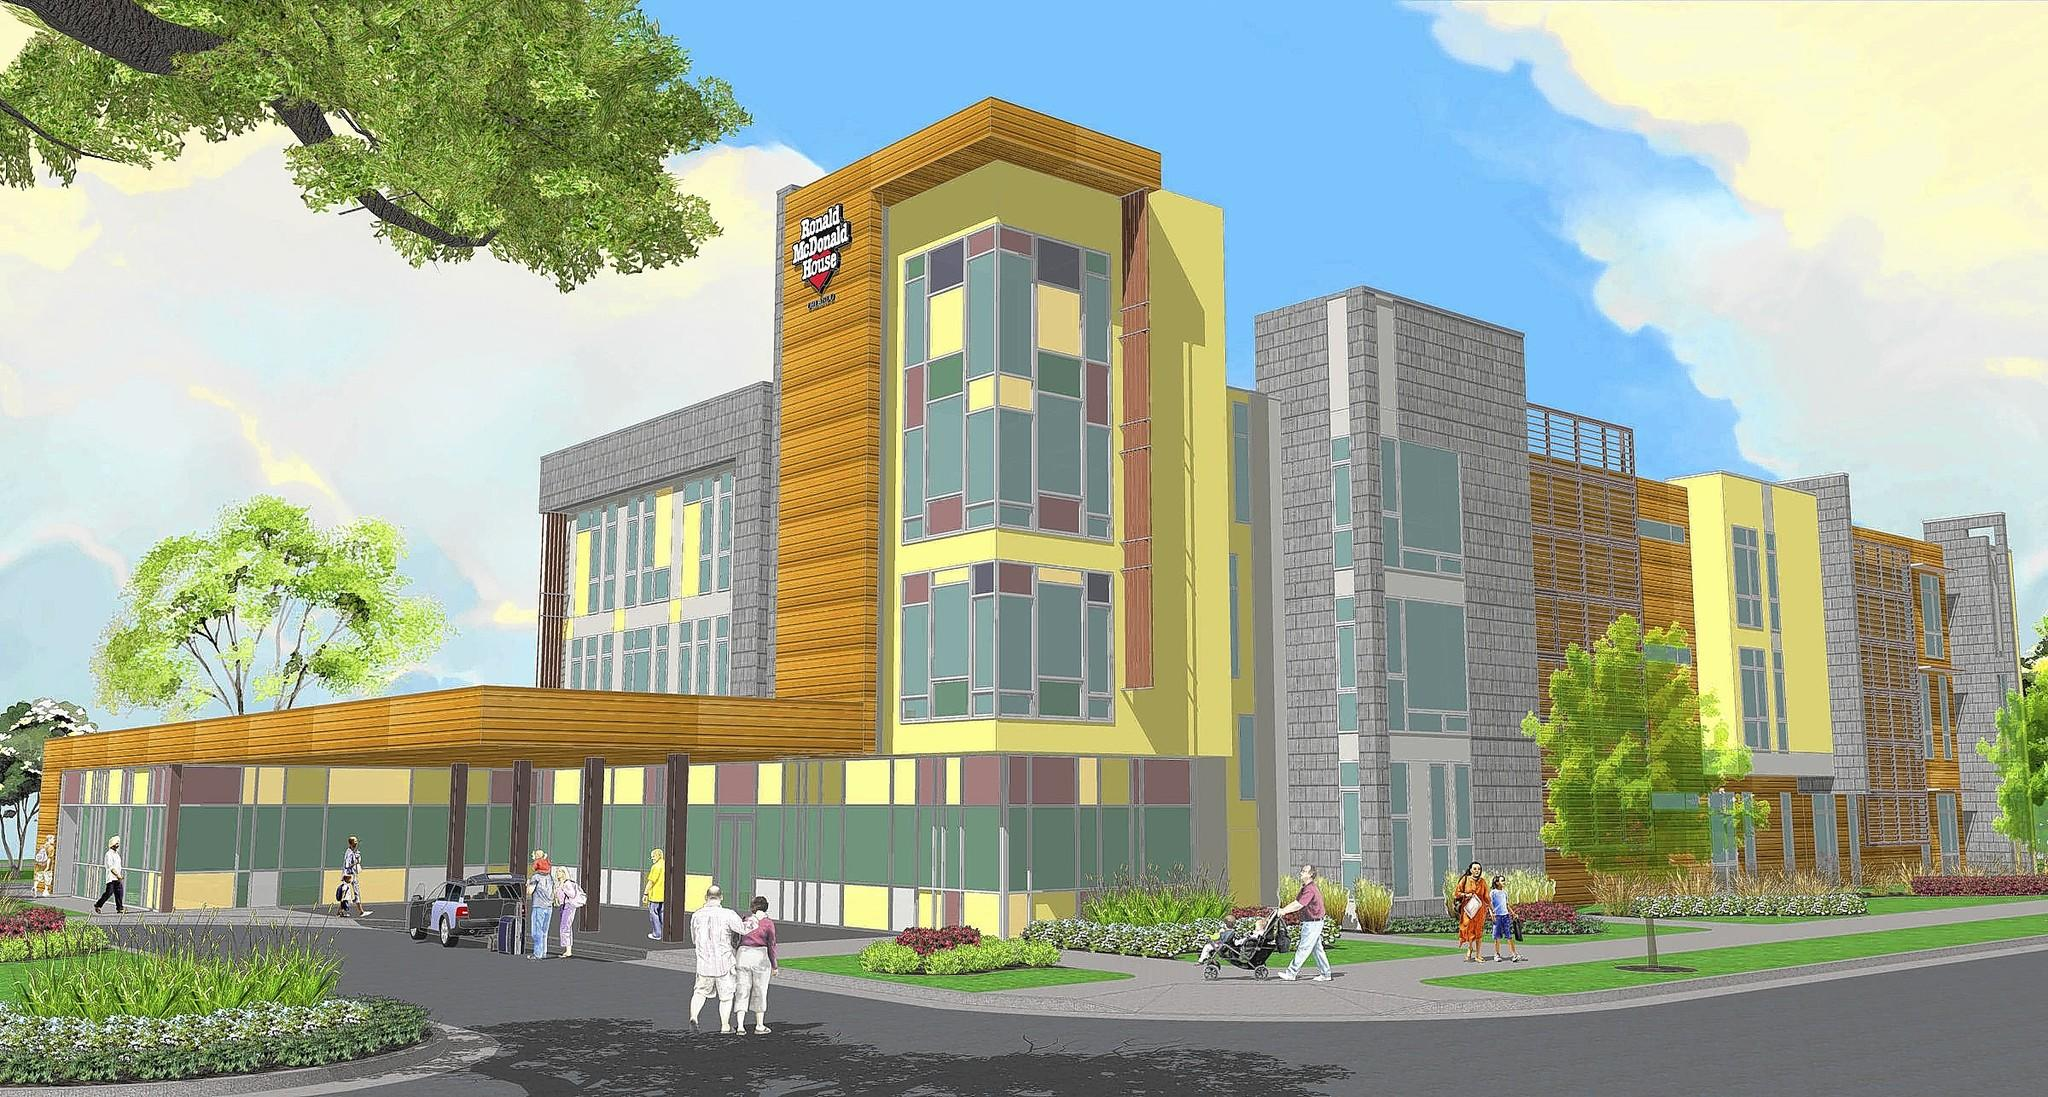 An artist's rendering shows what the new Ronald McDonald House by Nemours Children's Hospital could look like.